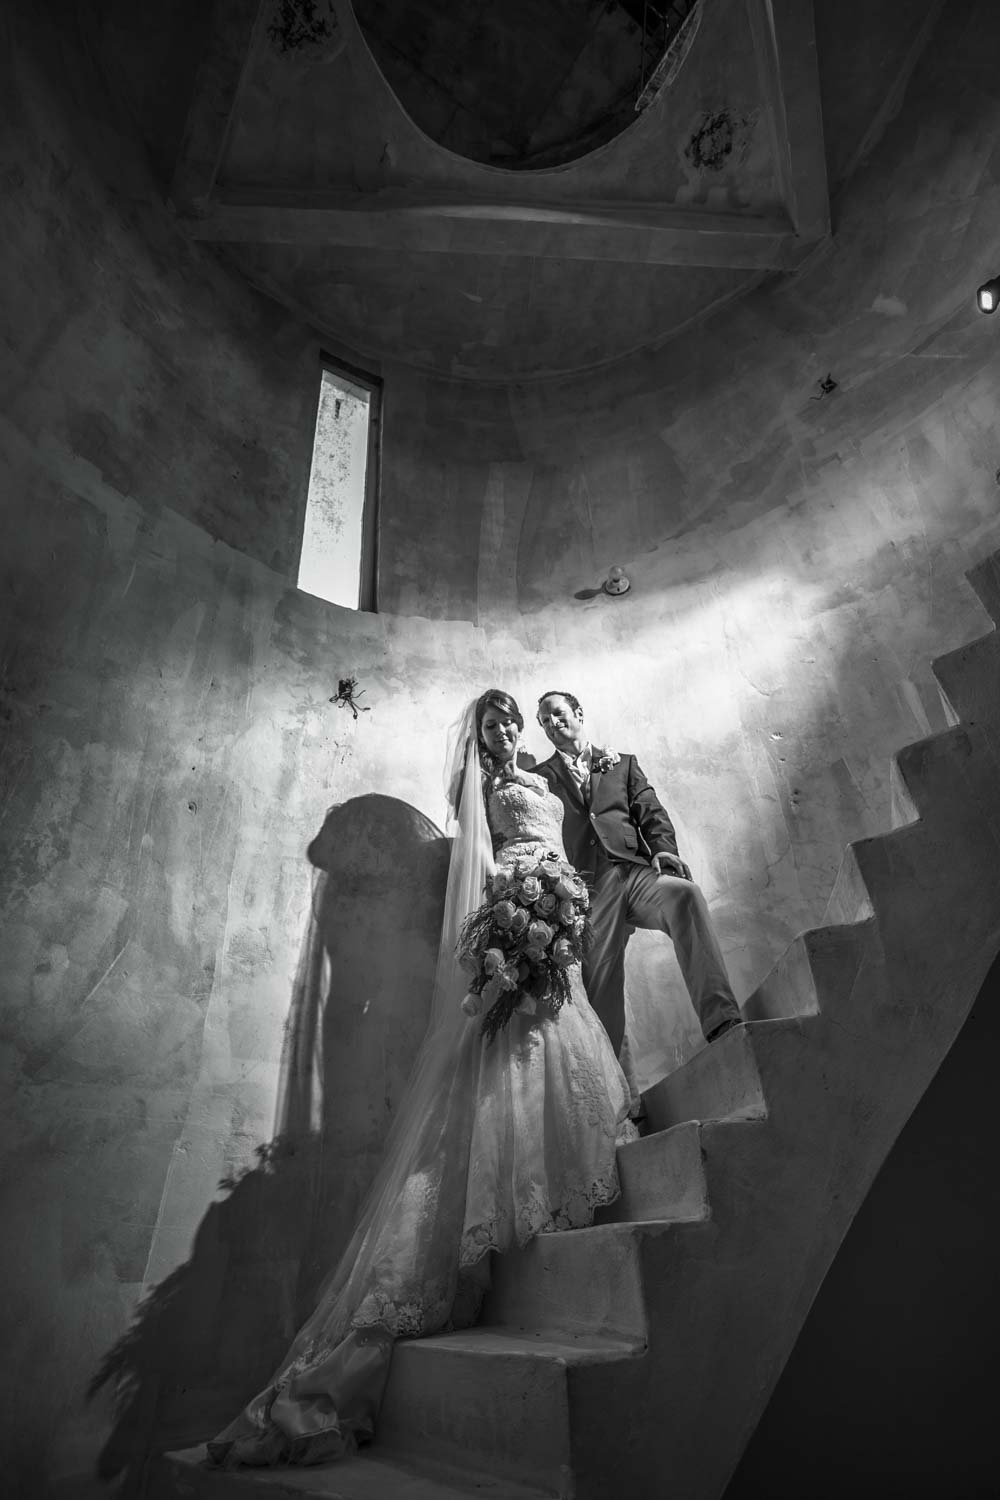 Bride and groom on staircase at Castle Club in Cabarete Dominican Republic after their wedding